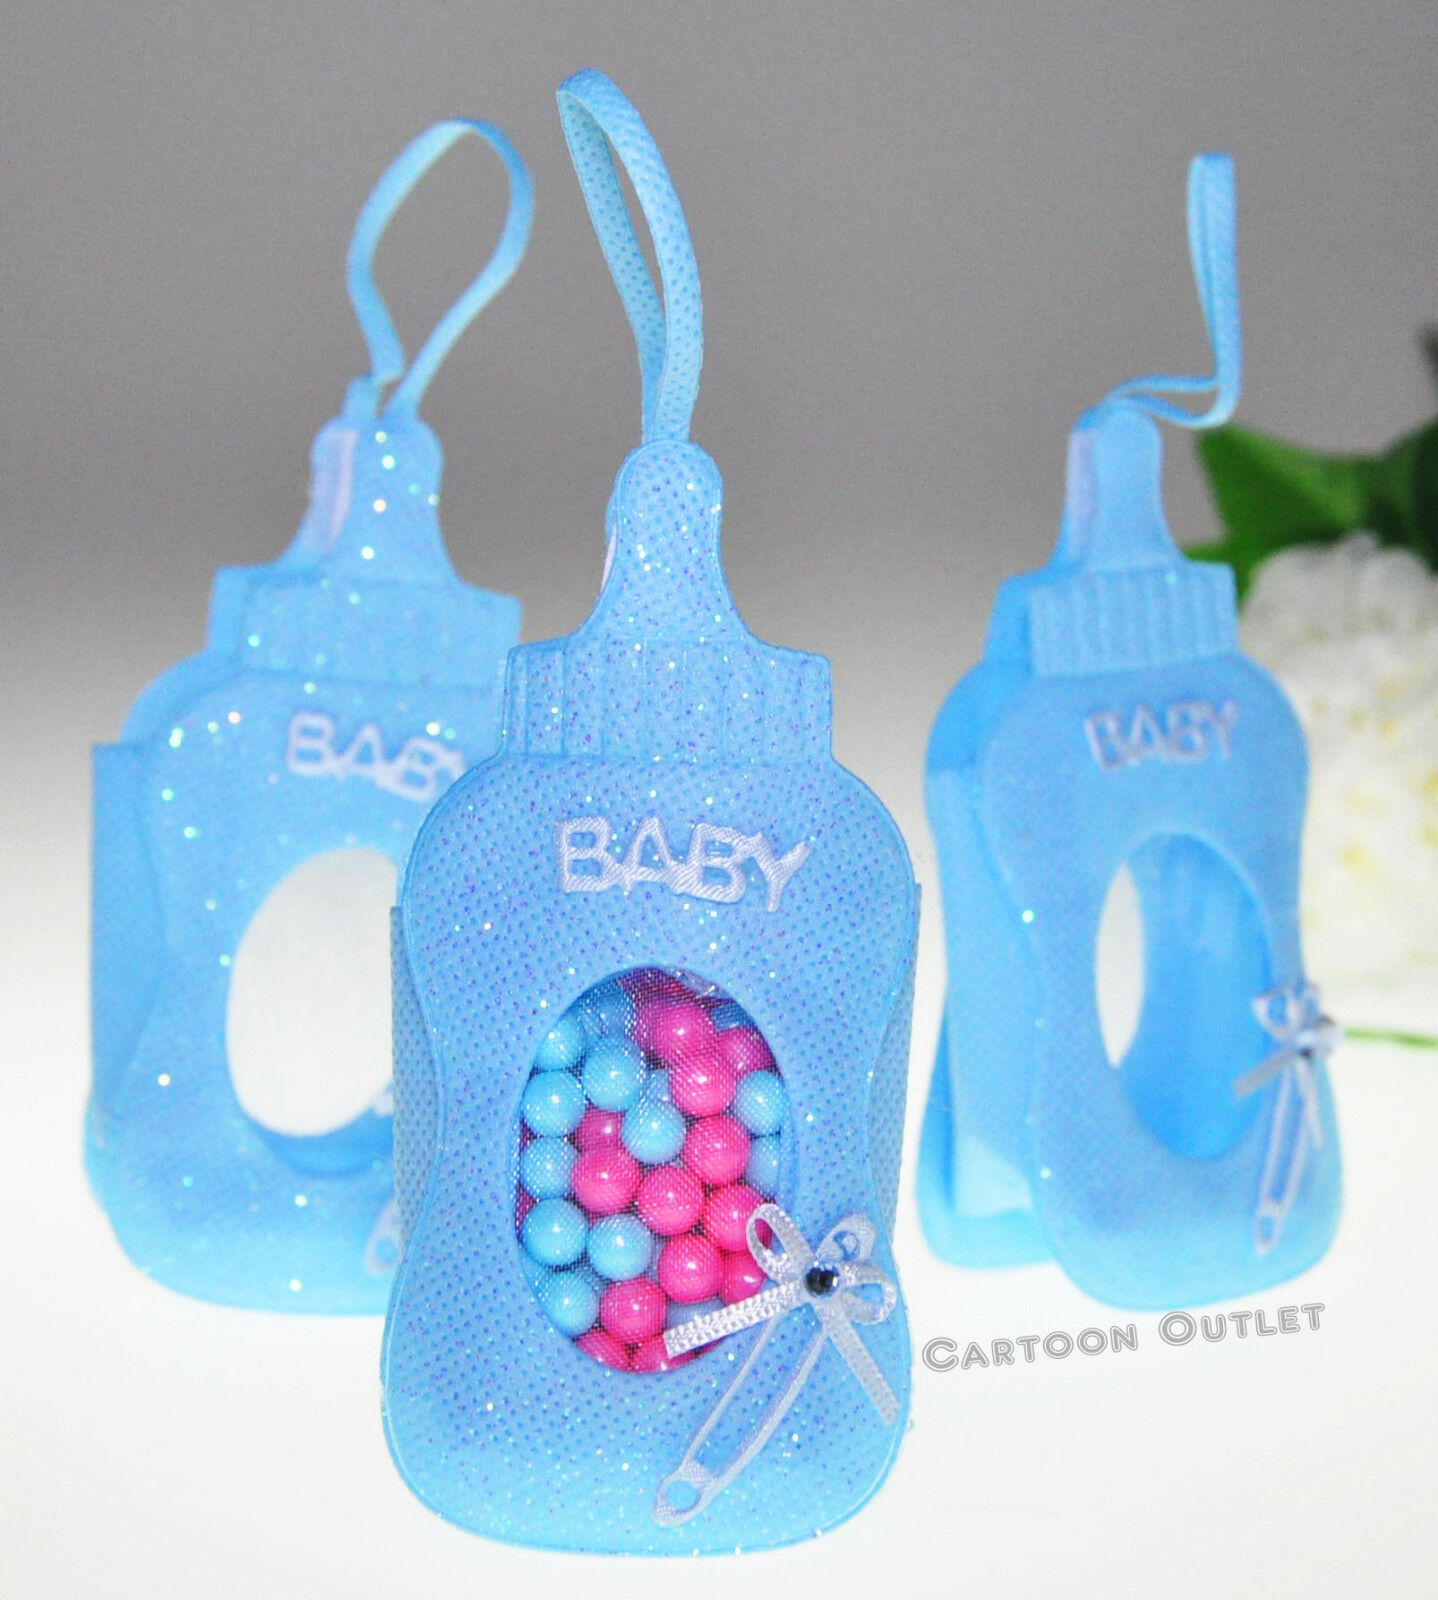 24 PC RECUERDOS BABY SHOWER FILLABLE BOTTLE POUCHES FAVORS Blau DECORATIONS BOY